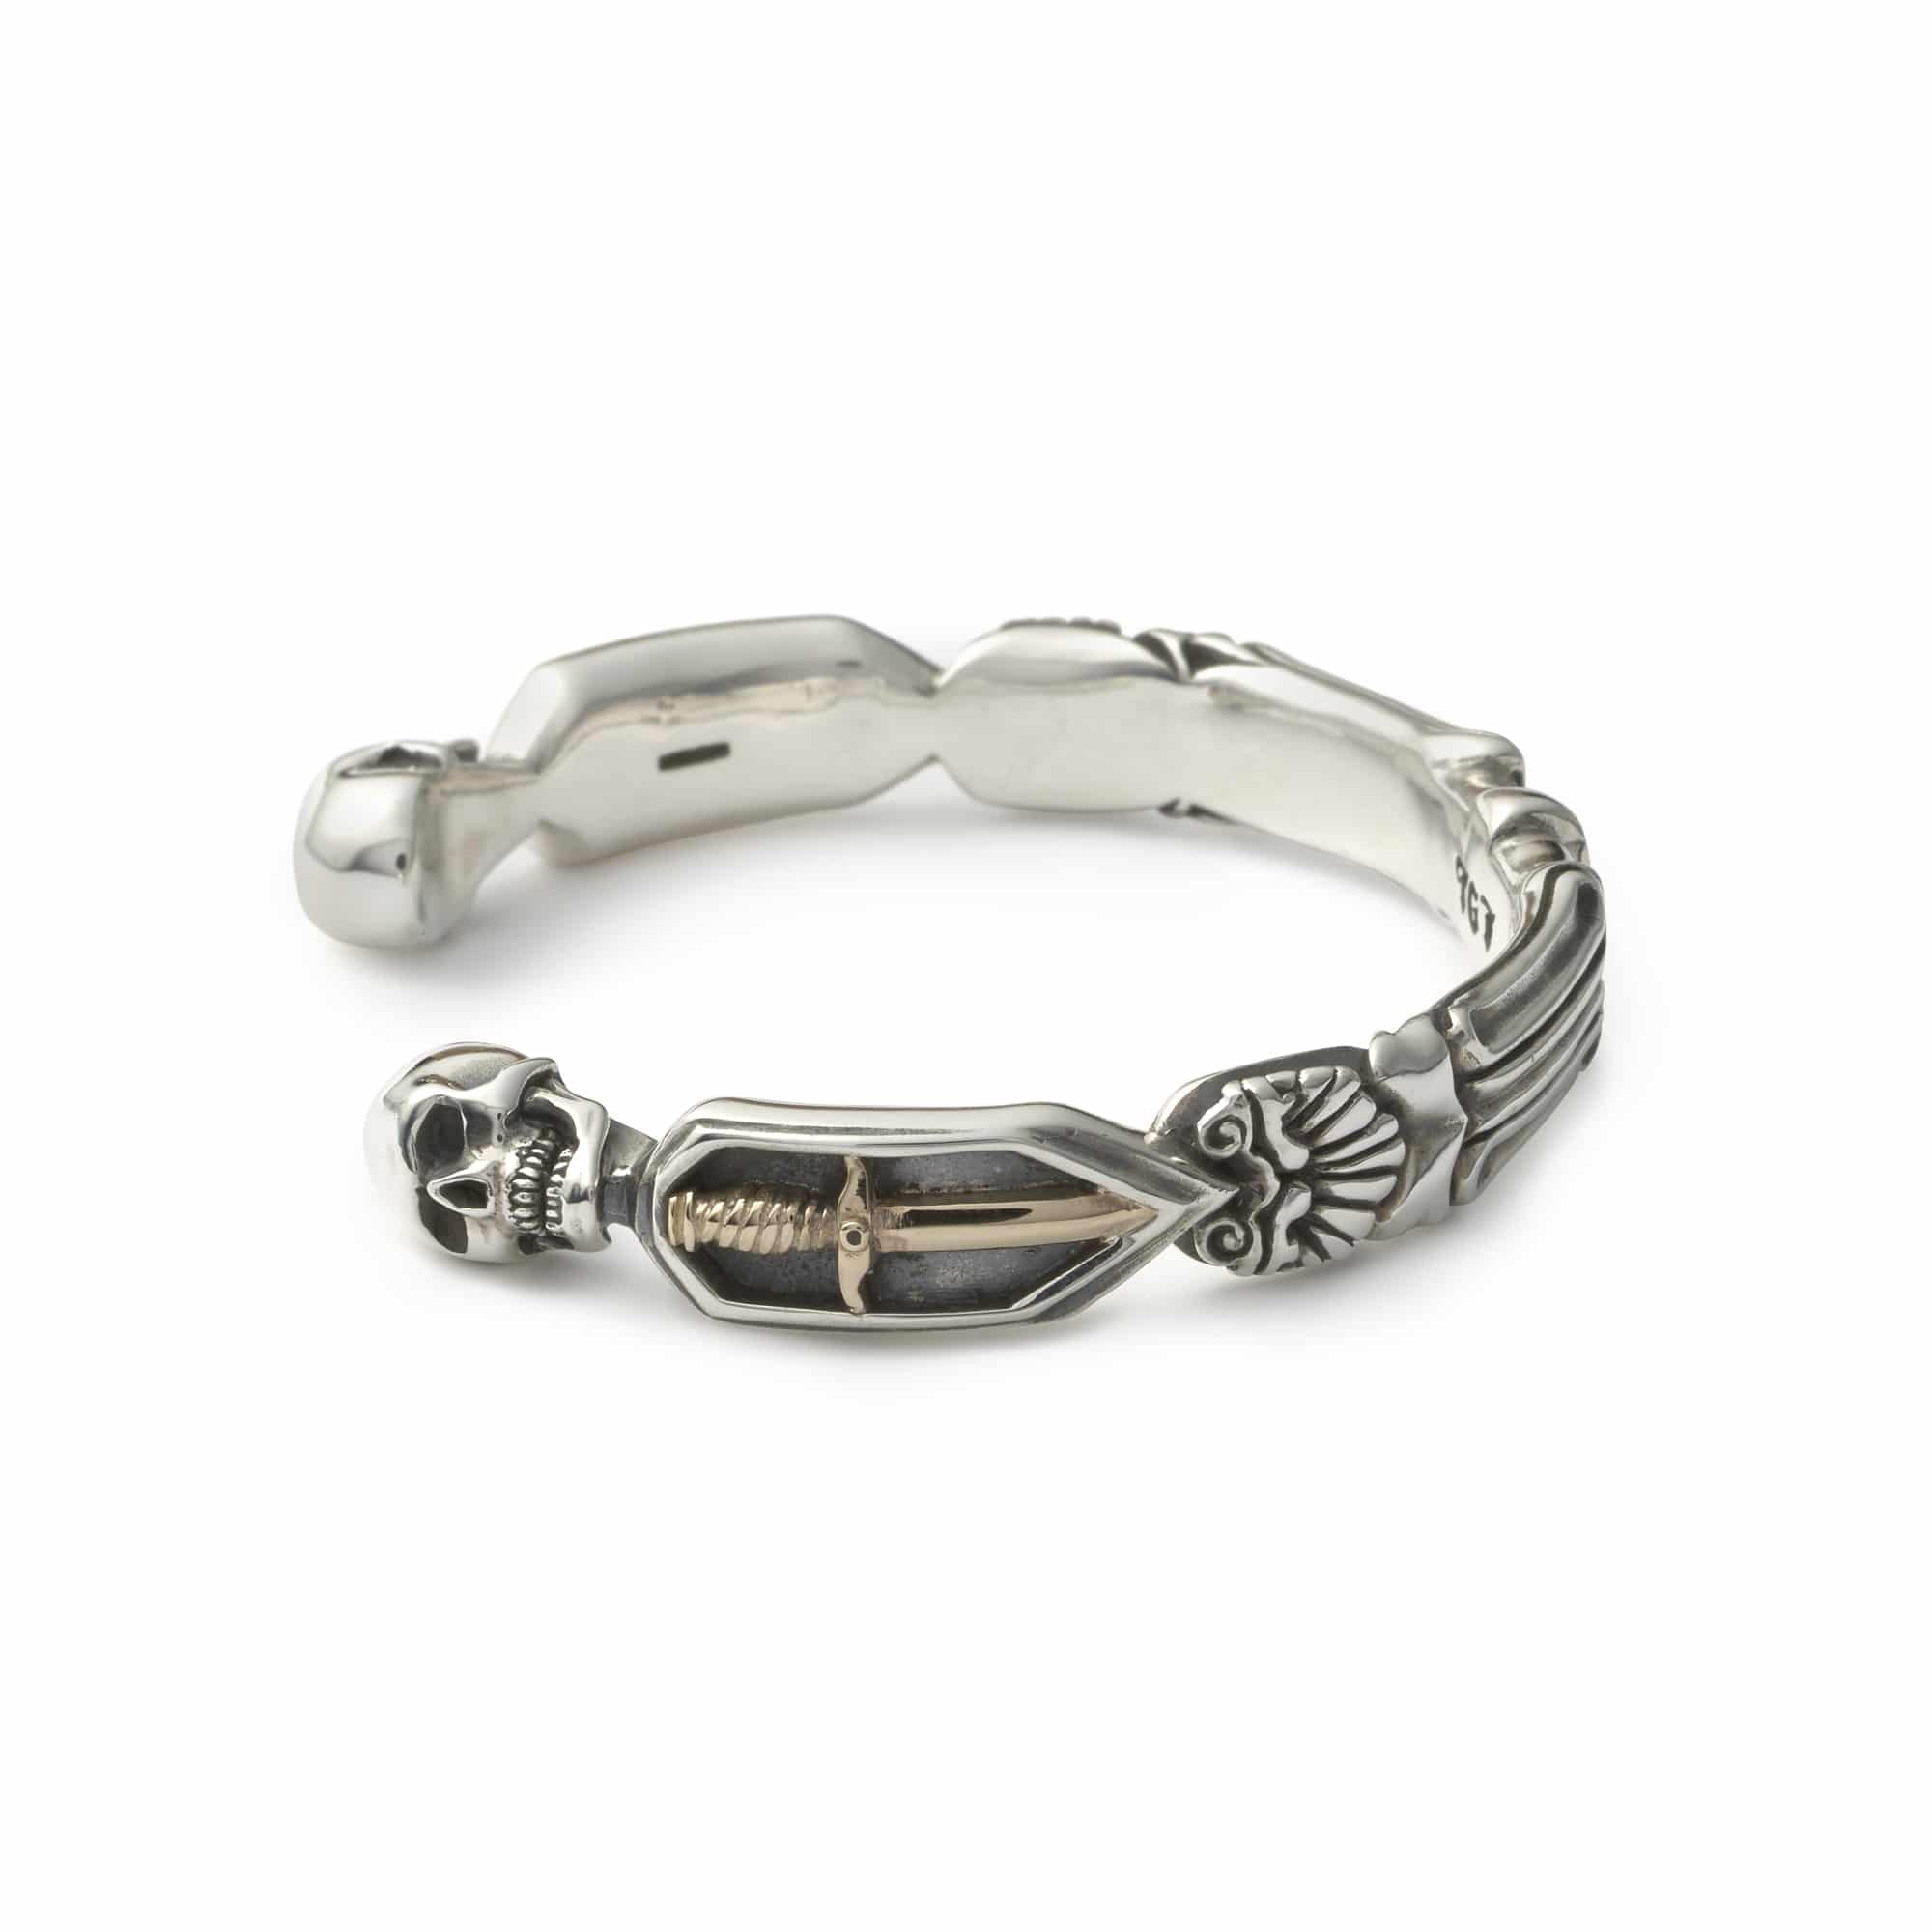 NEW: TGF Skull and Dagger Bangle